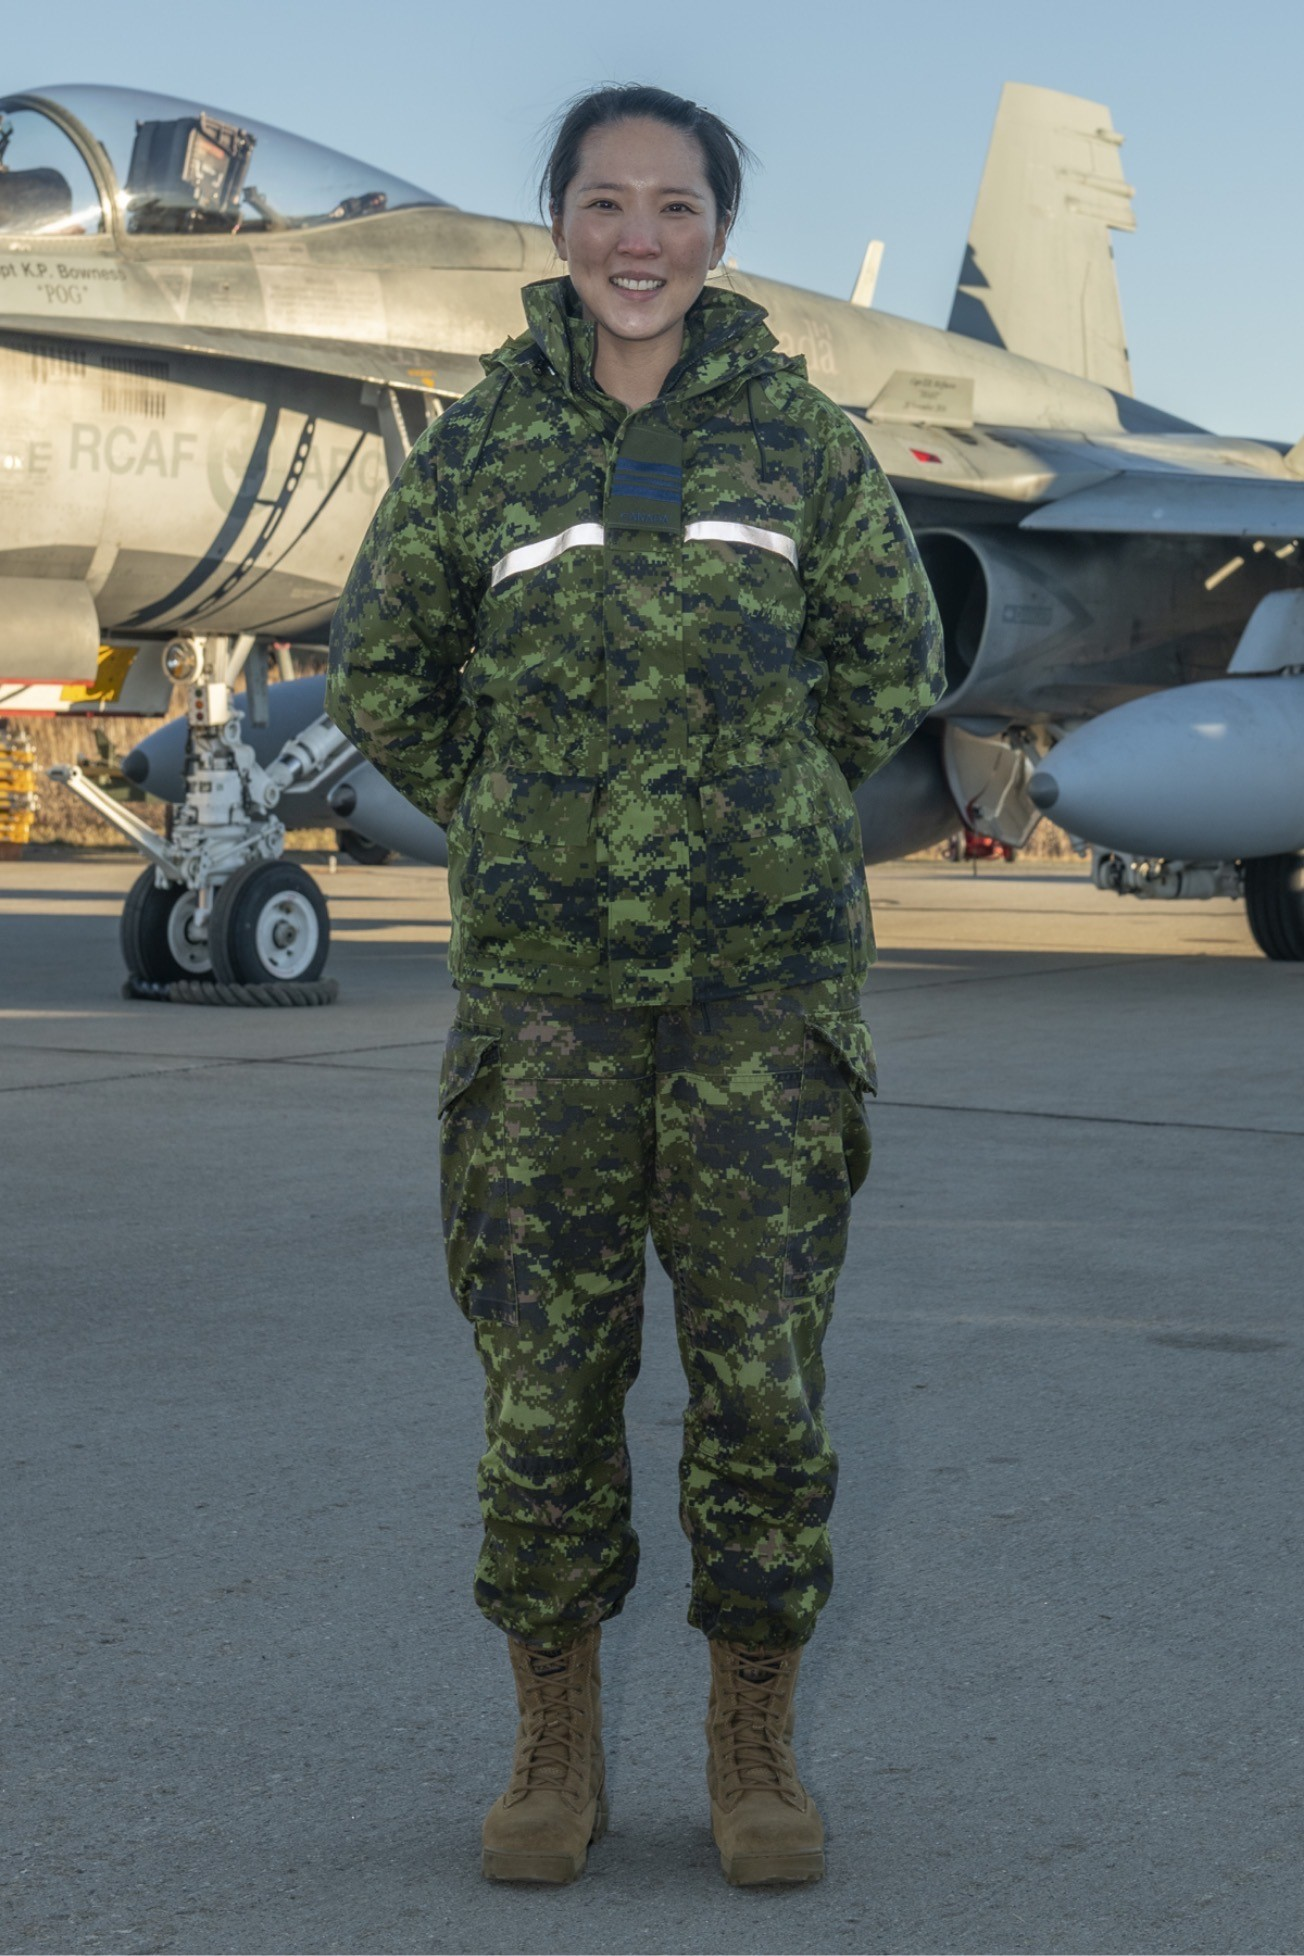 A smiling woman wearing a disruptive pattern uniform stands in front of a jet fighter.